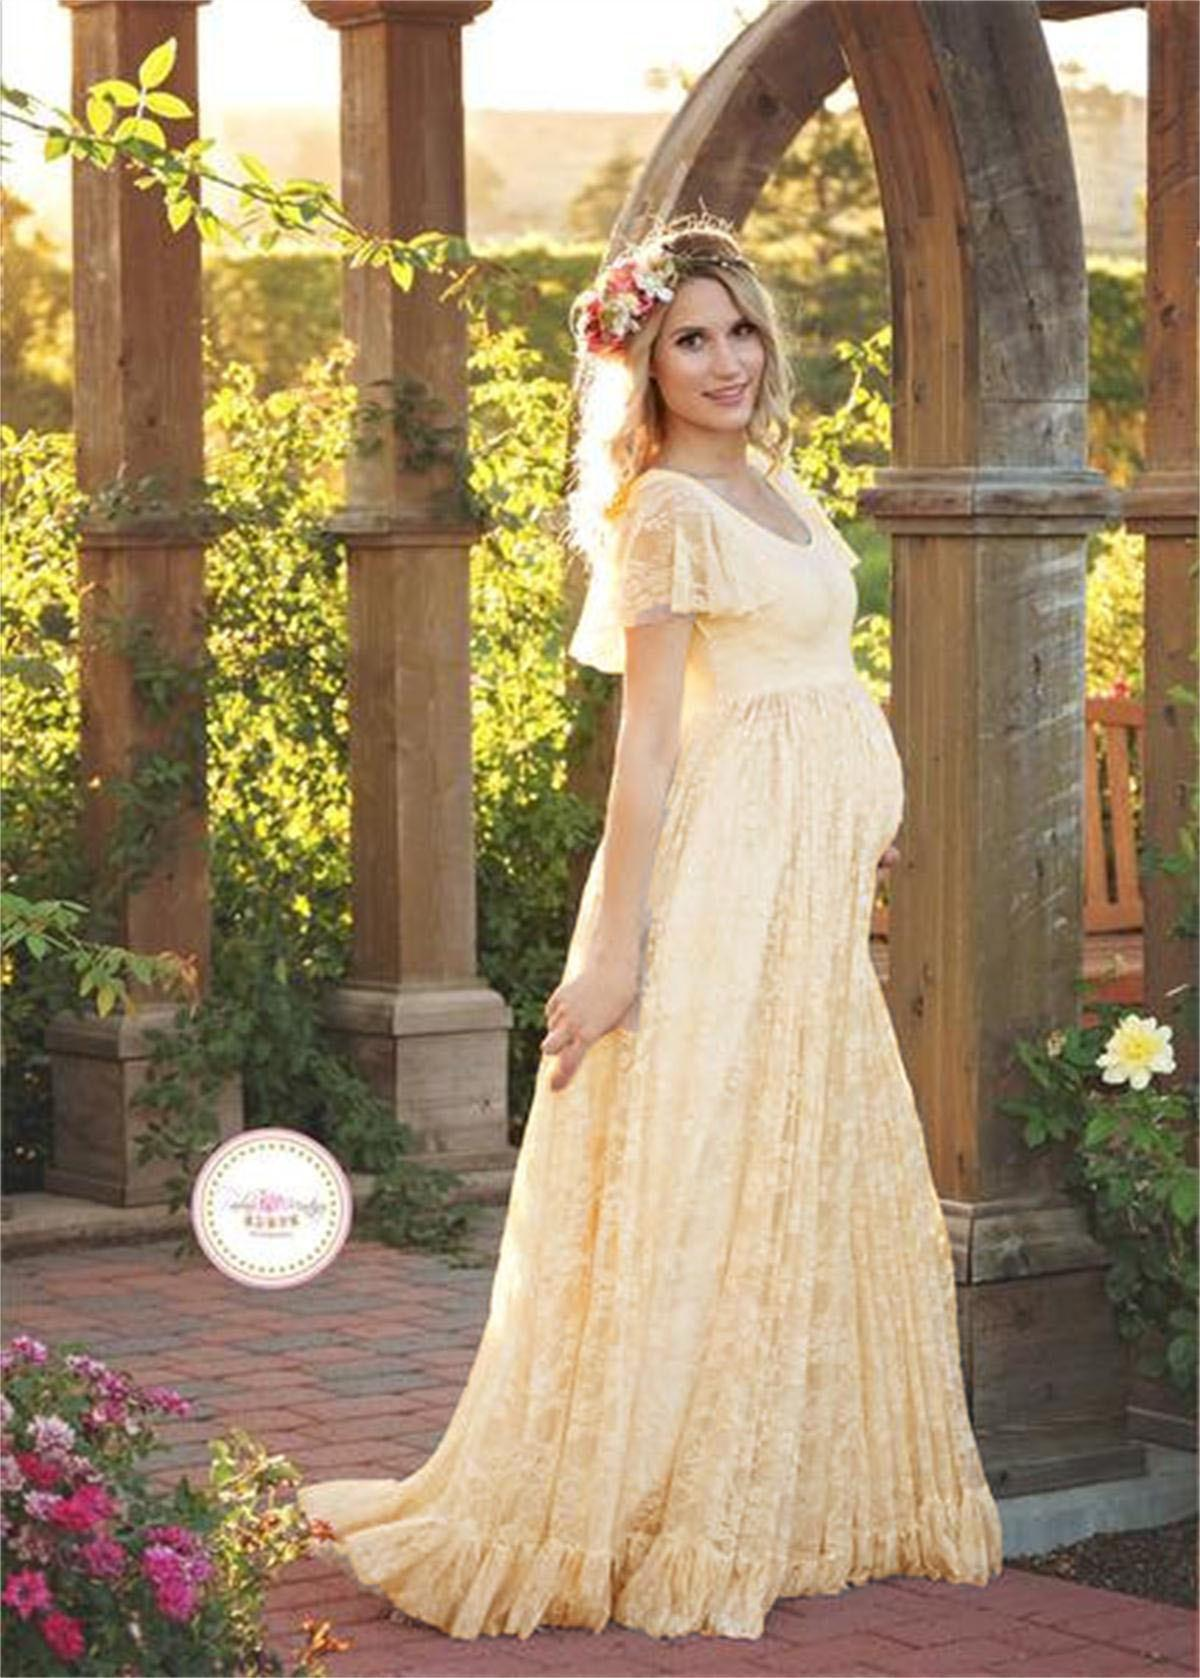 Women Dress Maternity Photography Props Lace Pregnancy Clothes Maternity Dresses for Pregnant Photo Shoot Cloth Plus